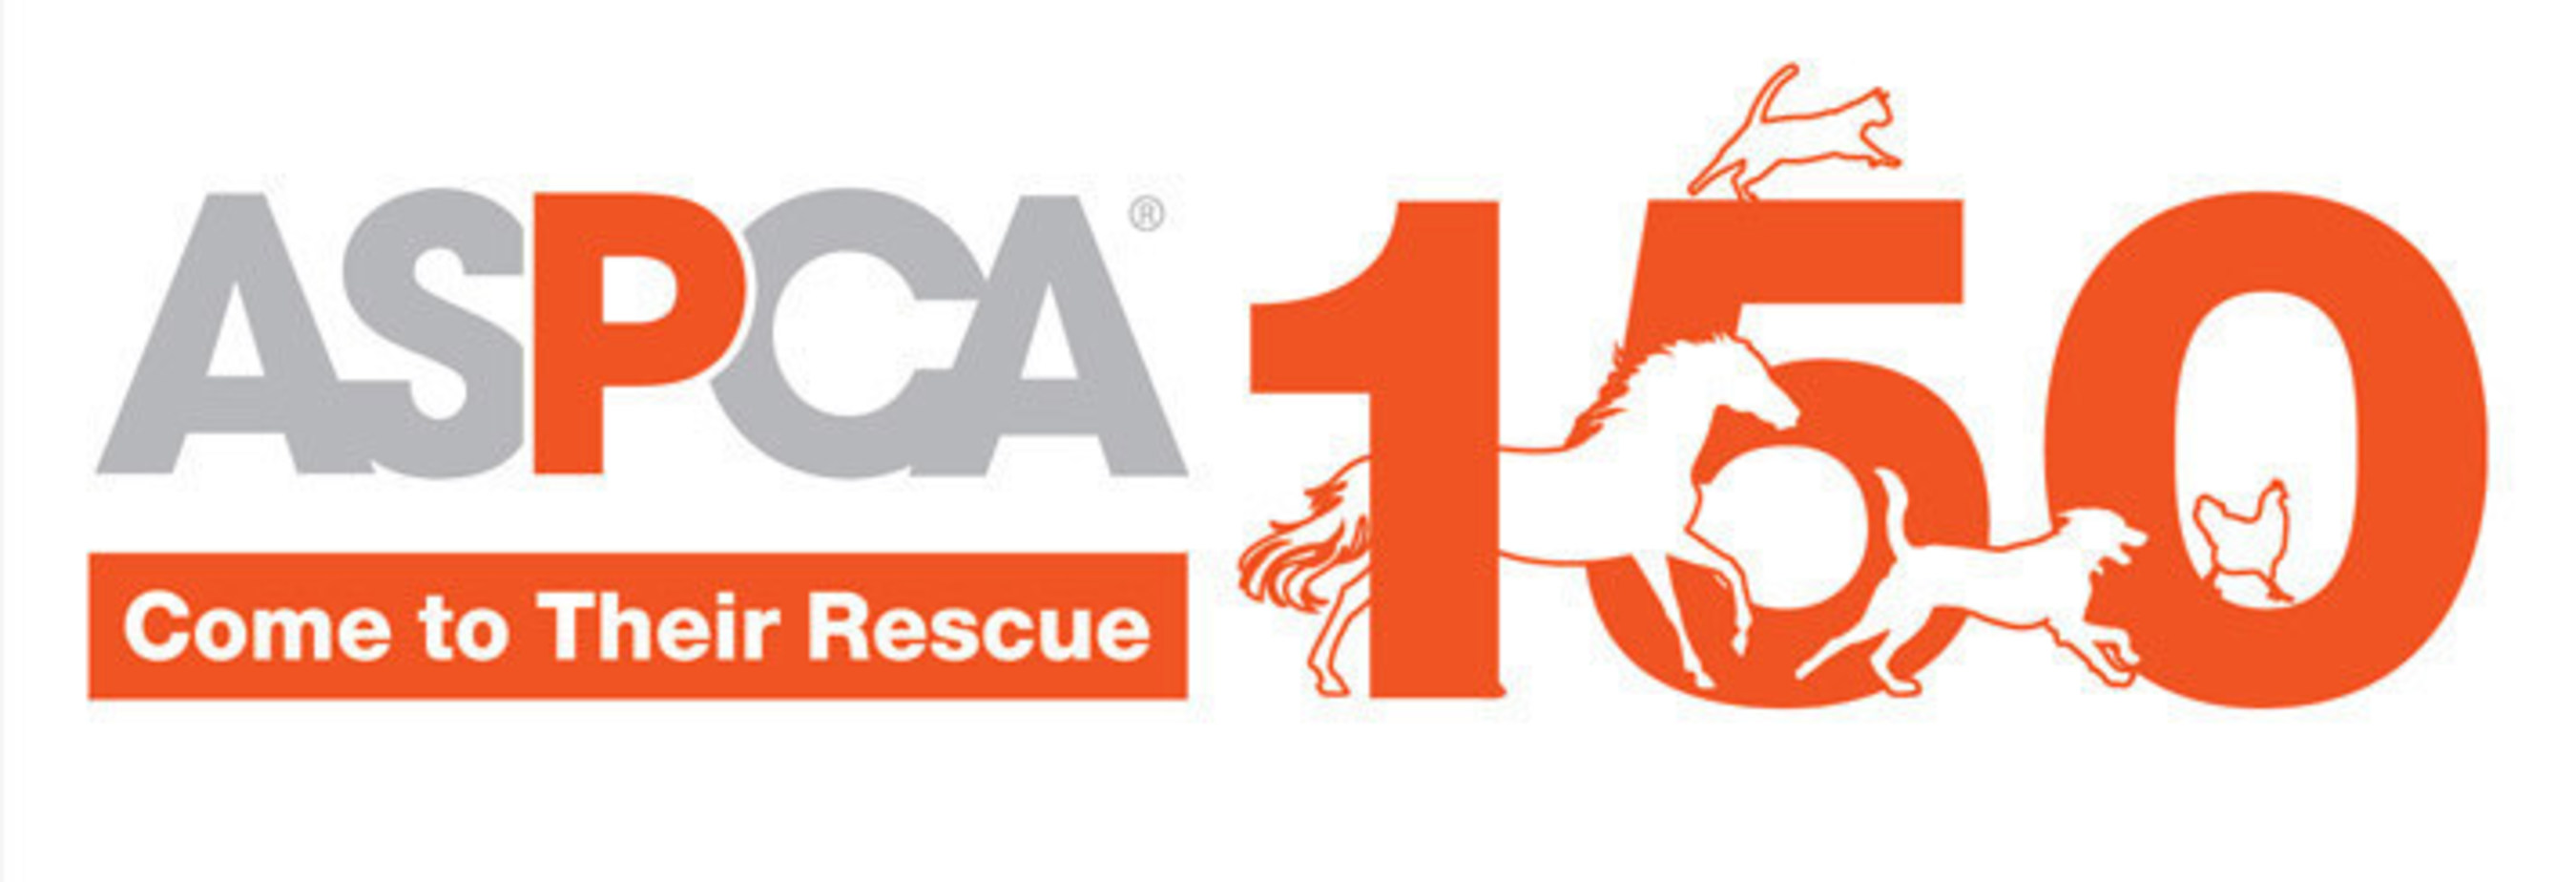 Stars Unite to Celebrate the ASPCA's 150th Anniversary with Nationwide Call-to-Action